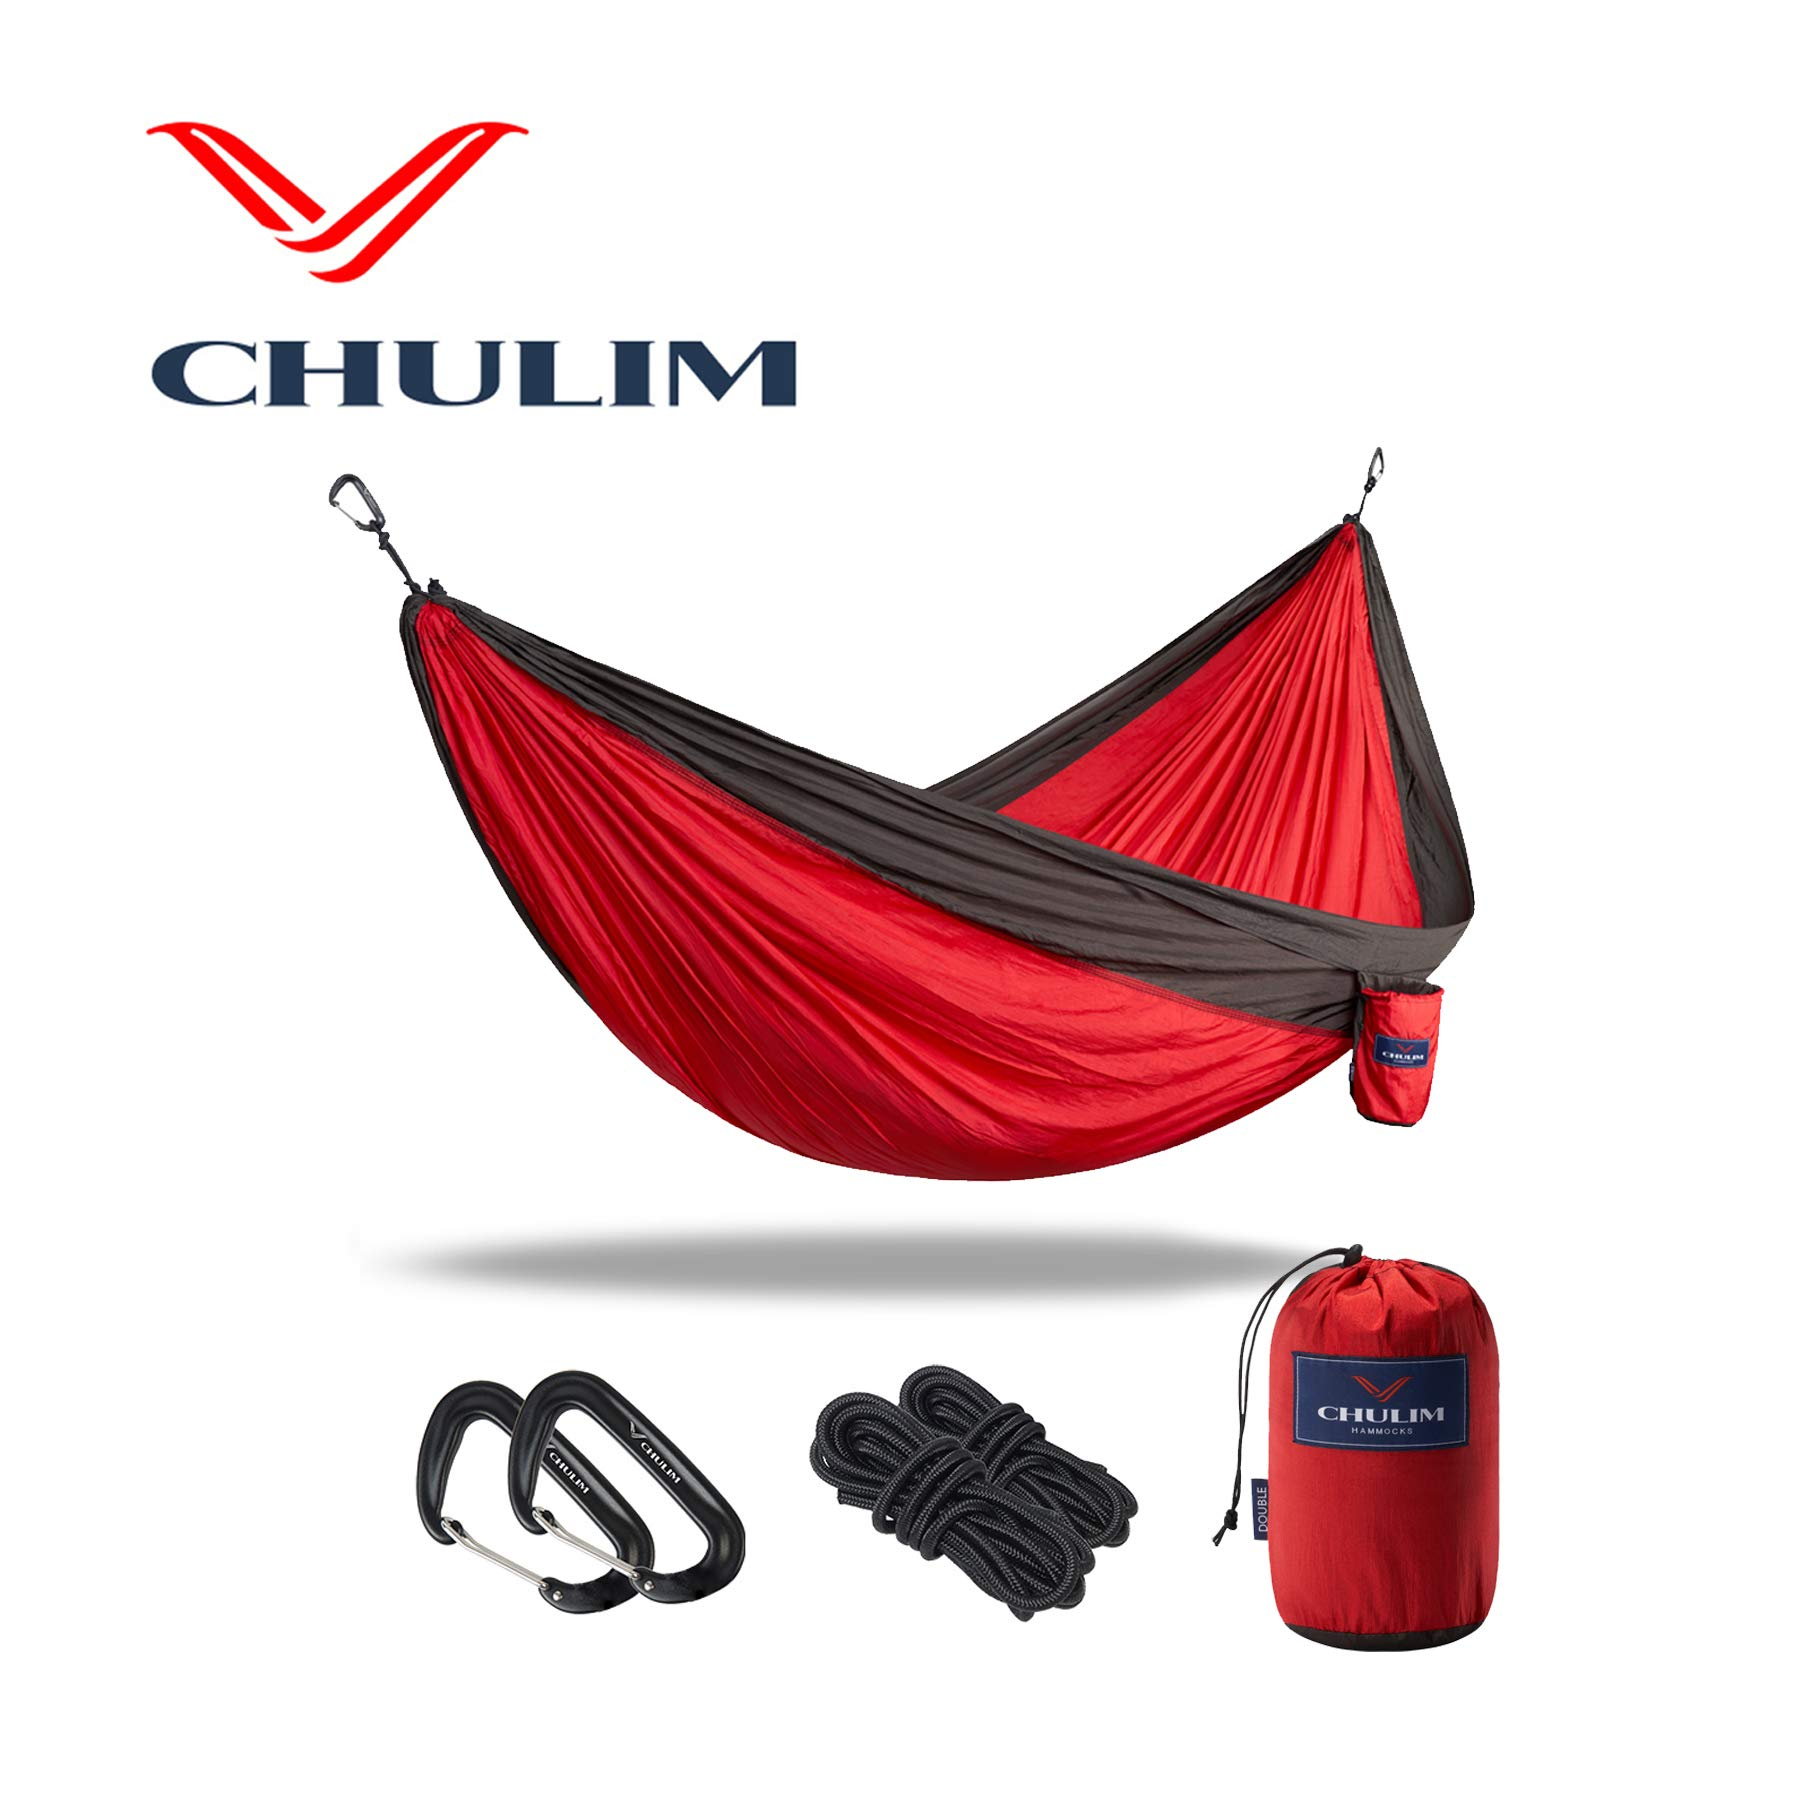 CHULIM Double Camping Hammock with Hanging Kit and 12KN Aluminum Wiregate Carabiner. Lightweight Portable Camping Gear.Parachute Nylon Hammock for Hiking,Travel,Backpacking.